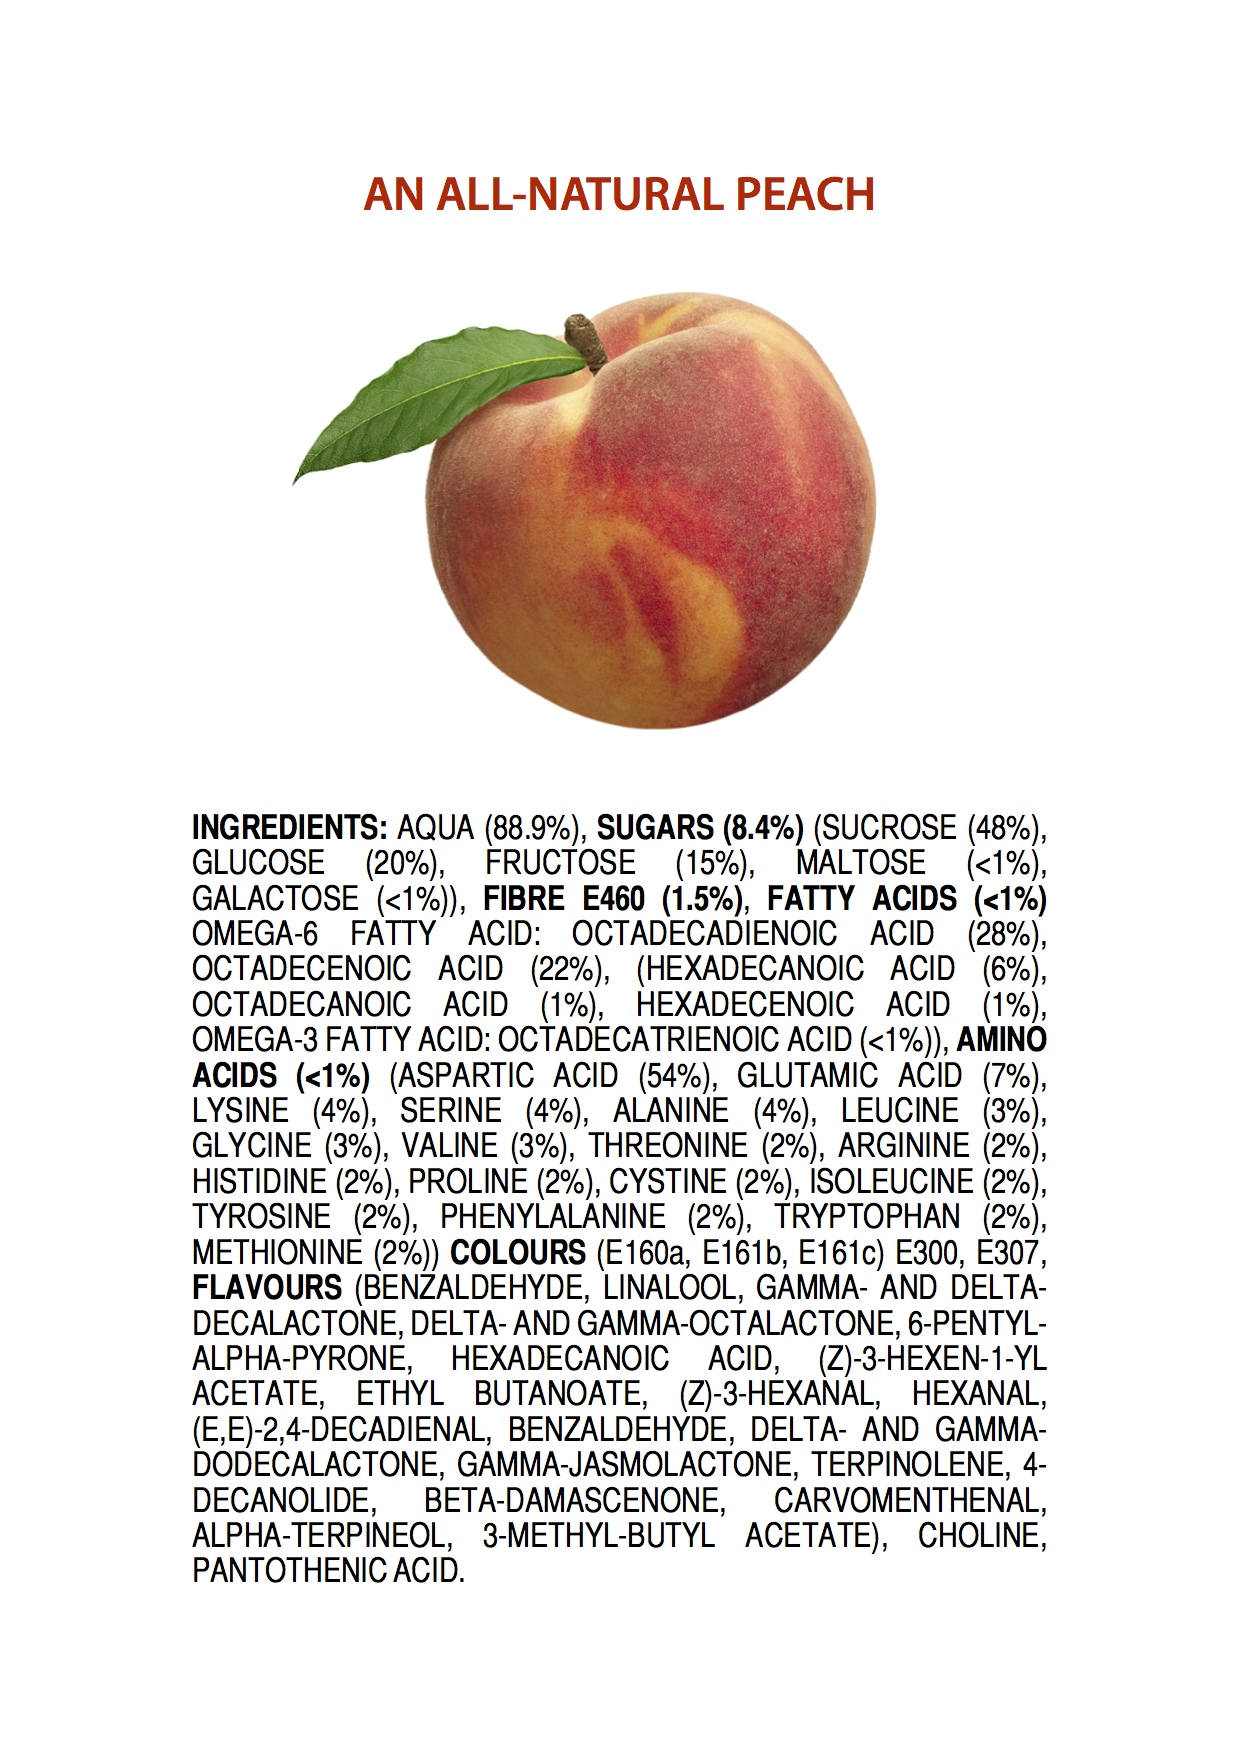 Posters james kennedy ingredients of an all natural peach poster buycottarizona Image collections